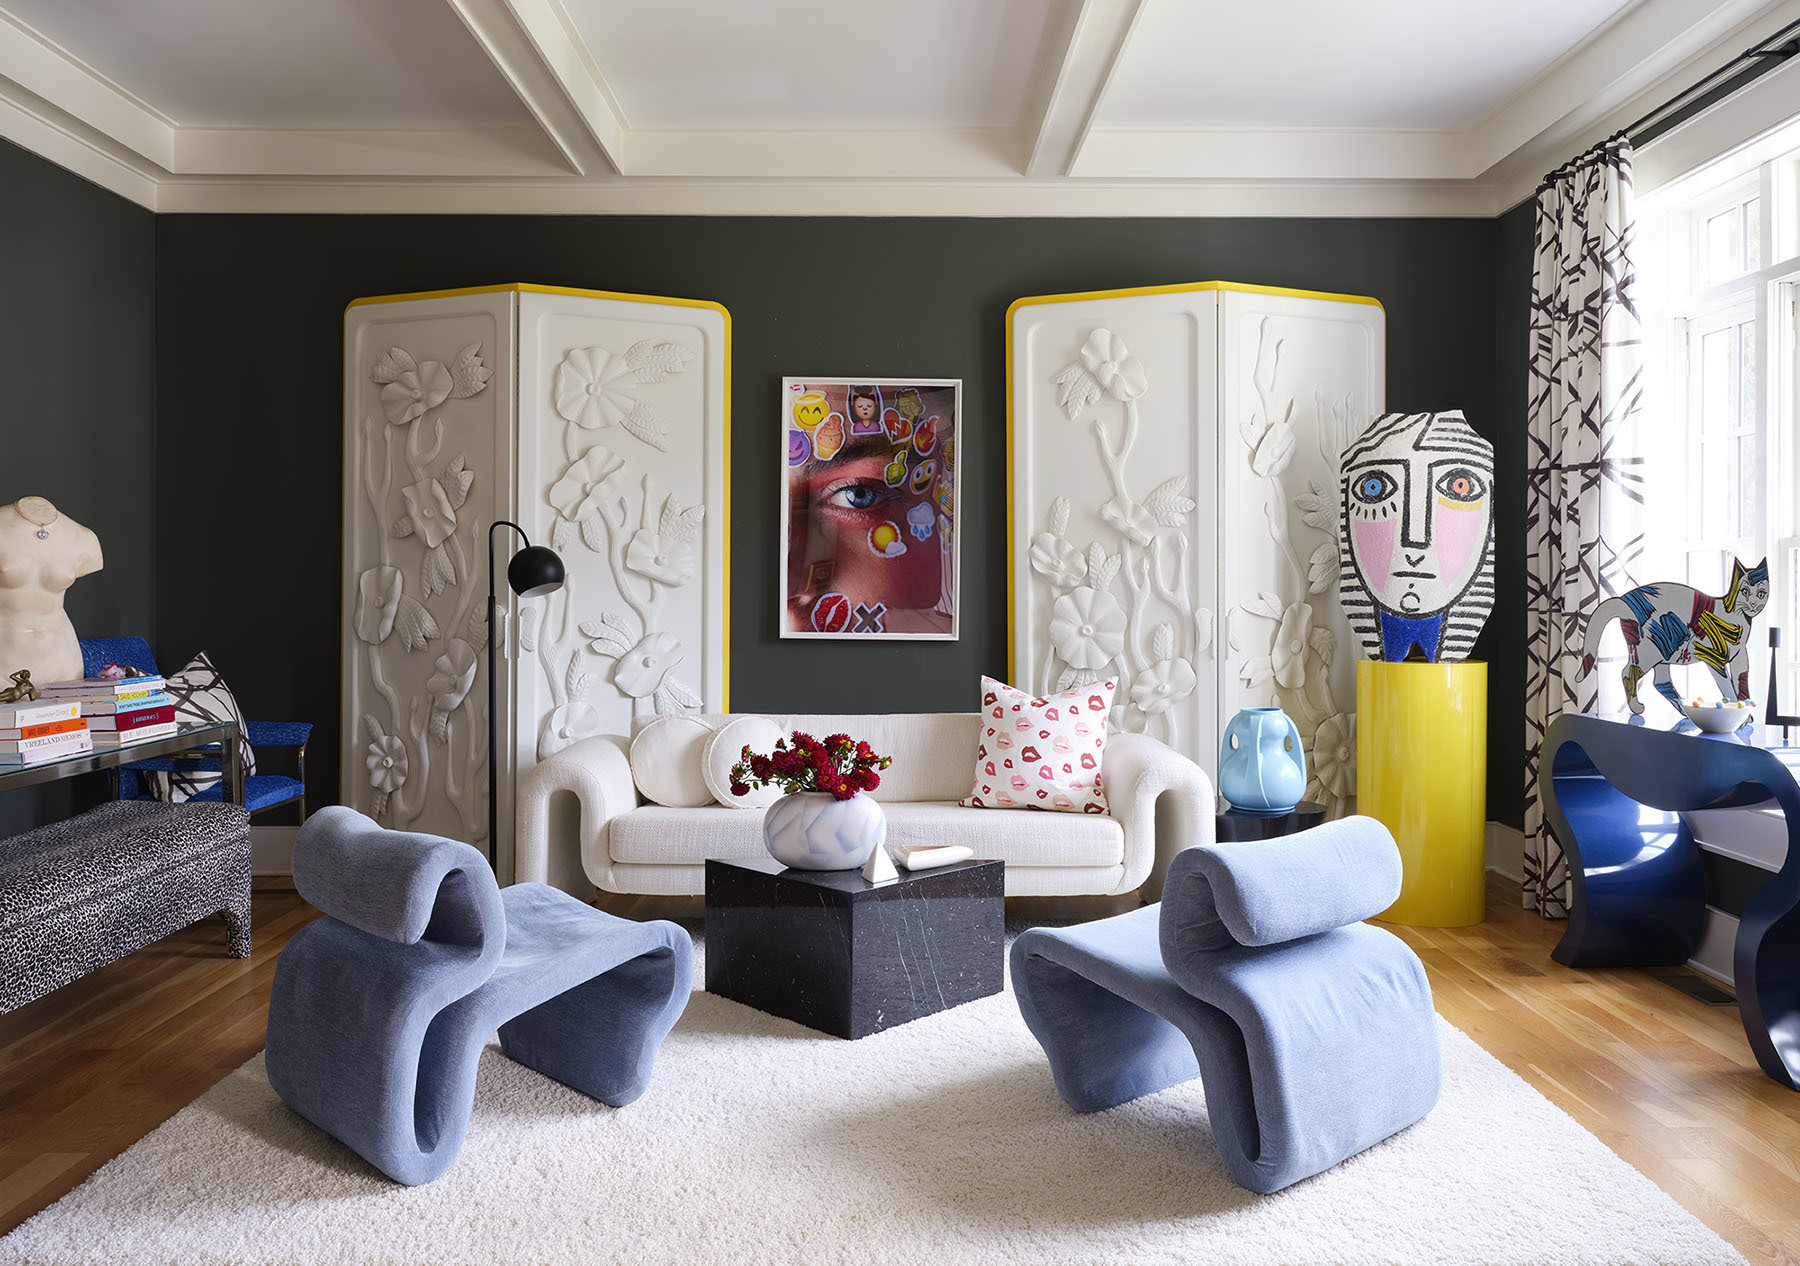 Angela Chrusciaki Blehmreally indulged the senses in her bright and vivid living room.Sherwin-Williams Paint |Steve Leonard for Brayton International Vintage Sofa |Angela Chrusciaki Blehm Custom Pillow |Mimosa Lane Artwork | Vintage Accent Chairs |Gillian Bryce Screen |Gainsville Flooring Custom Rug |Gillian Bryce Artwork.